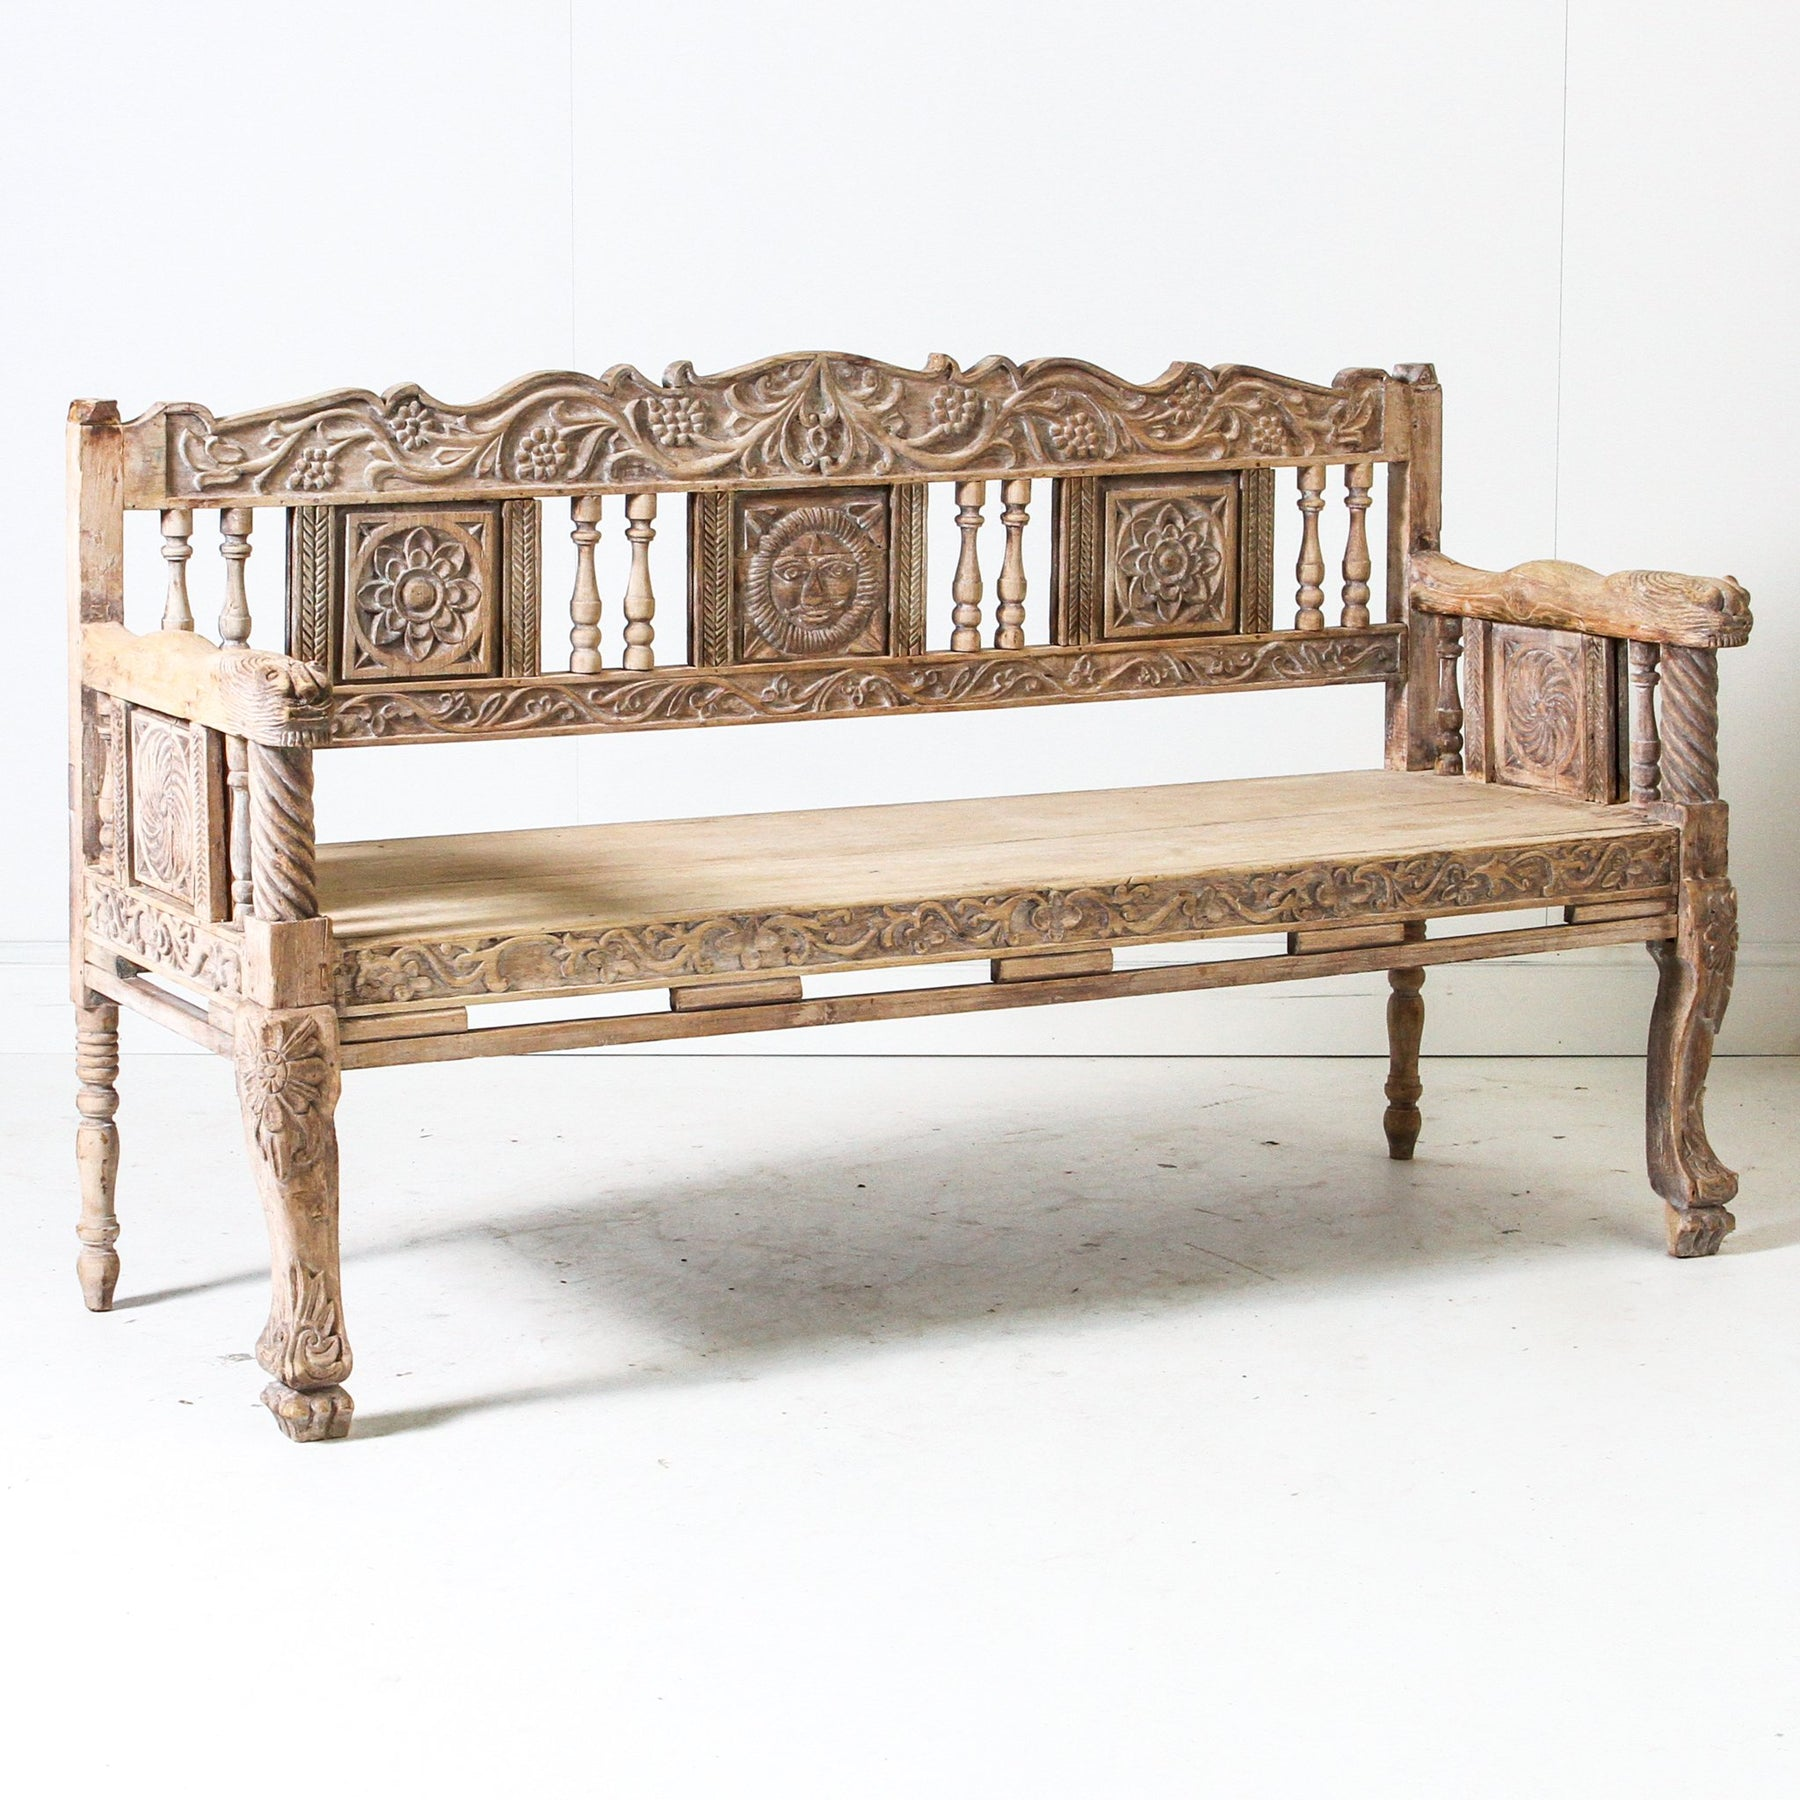 Amazing Ifu0519 09 Vintage Indian Bench Seat Indigo Love Collectors Pdpeps Interior Chair Design Pdpepsorg